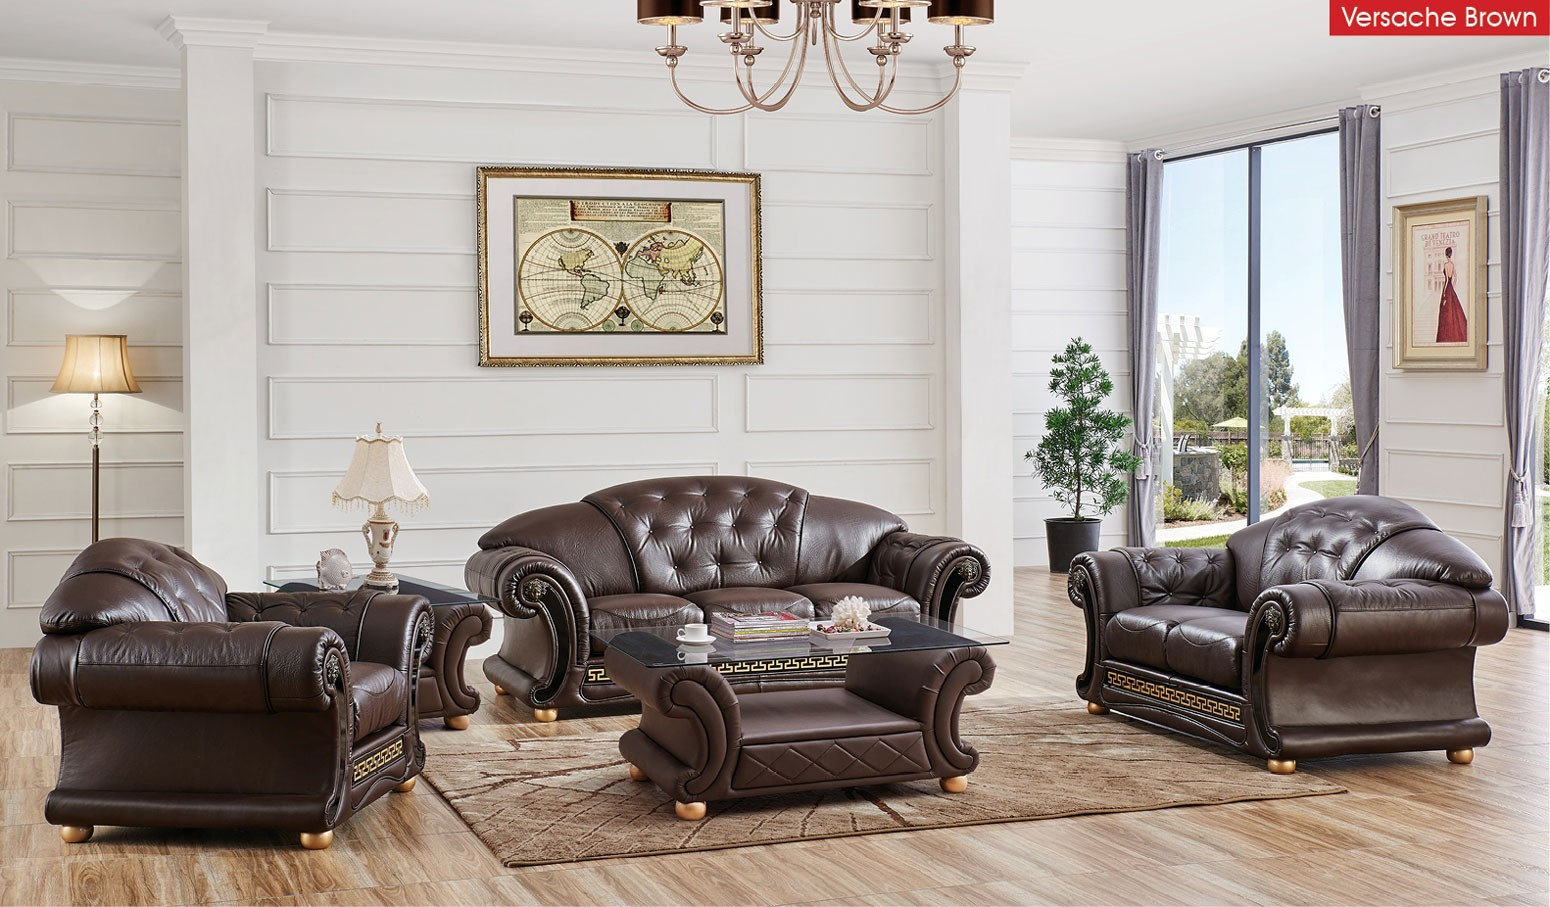 Versace Living Room Set in Brown Italian Leather by ESF